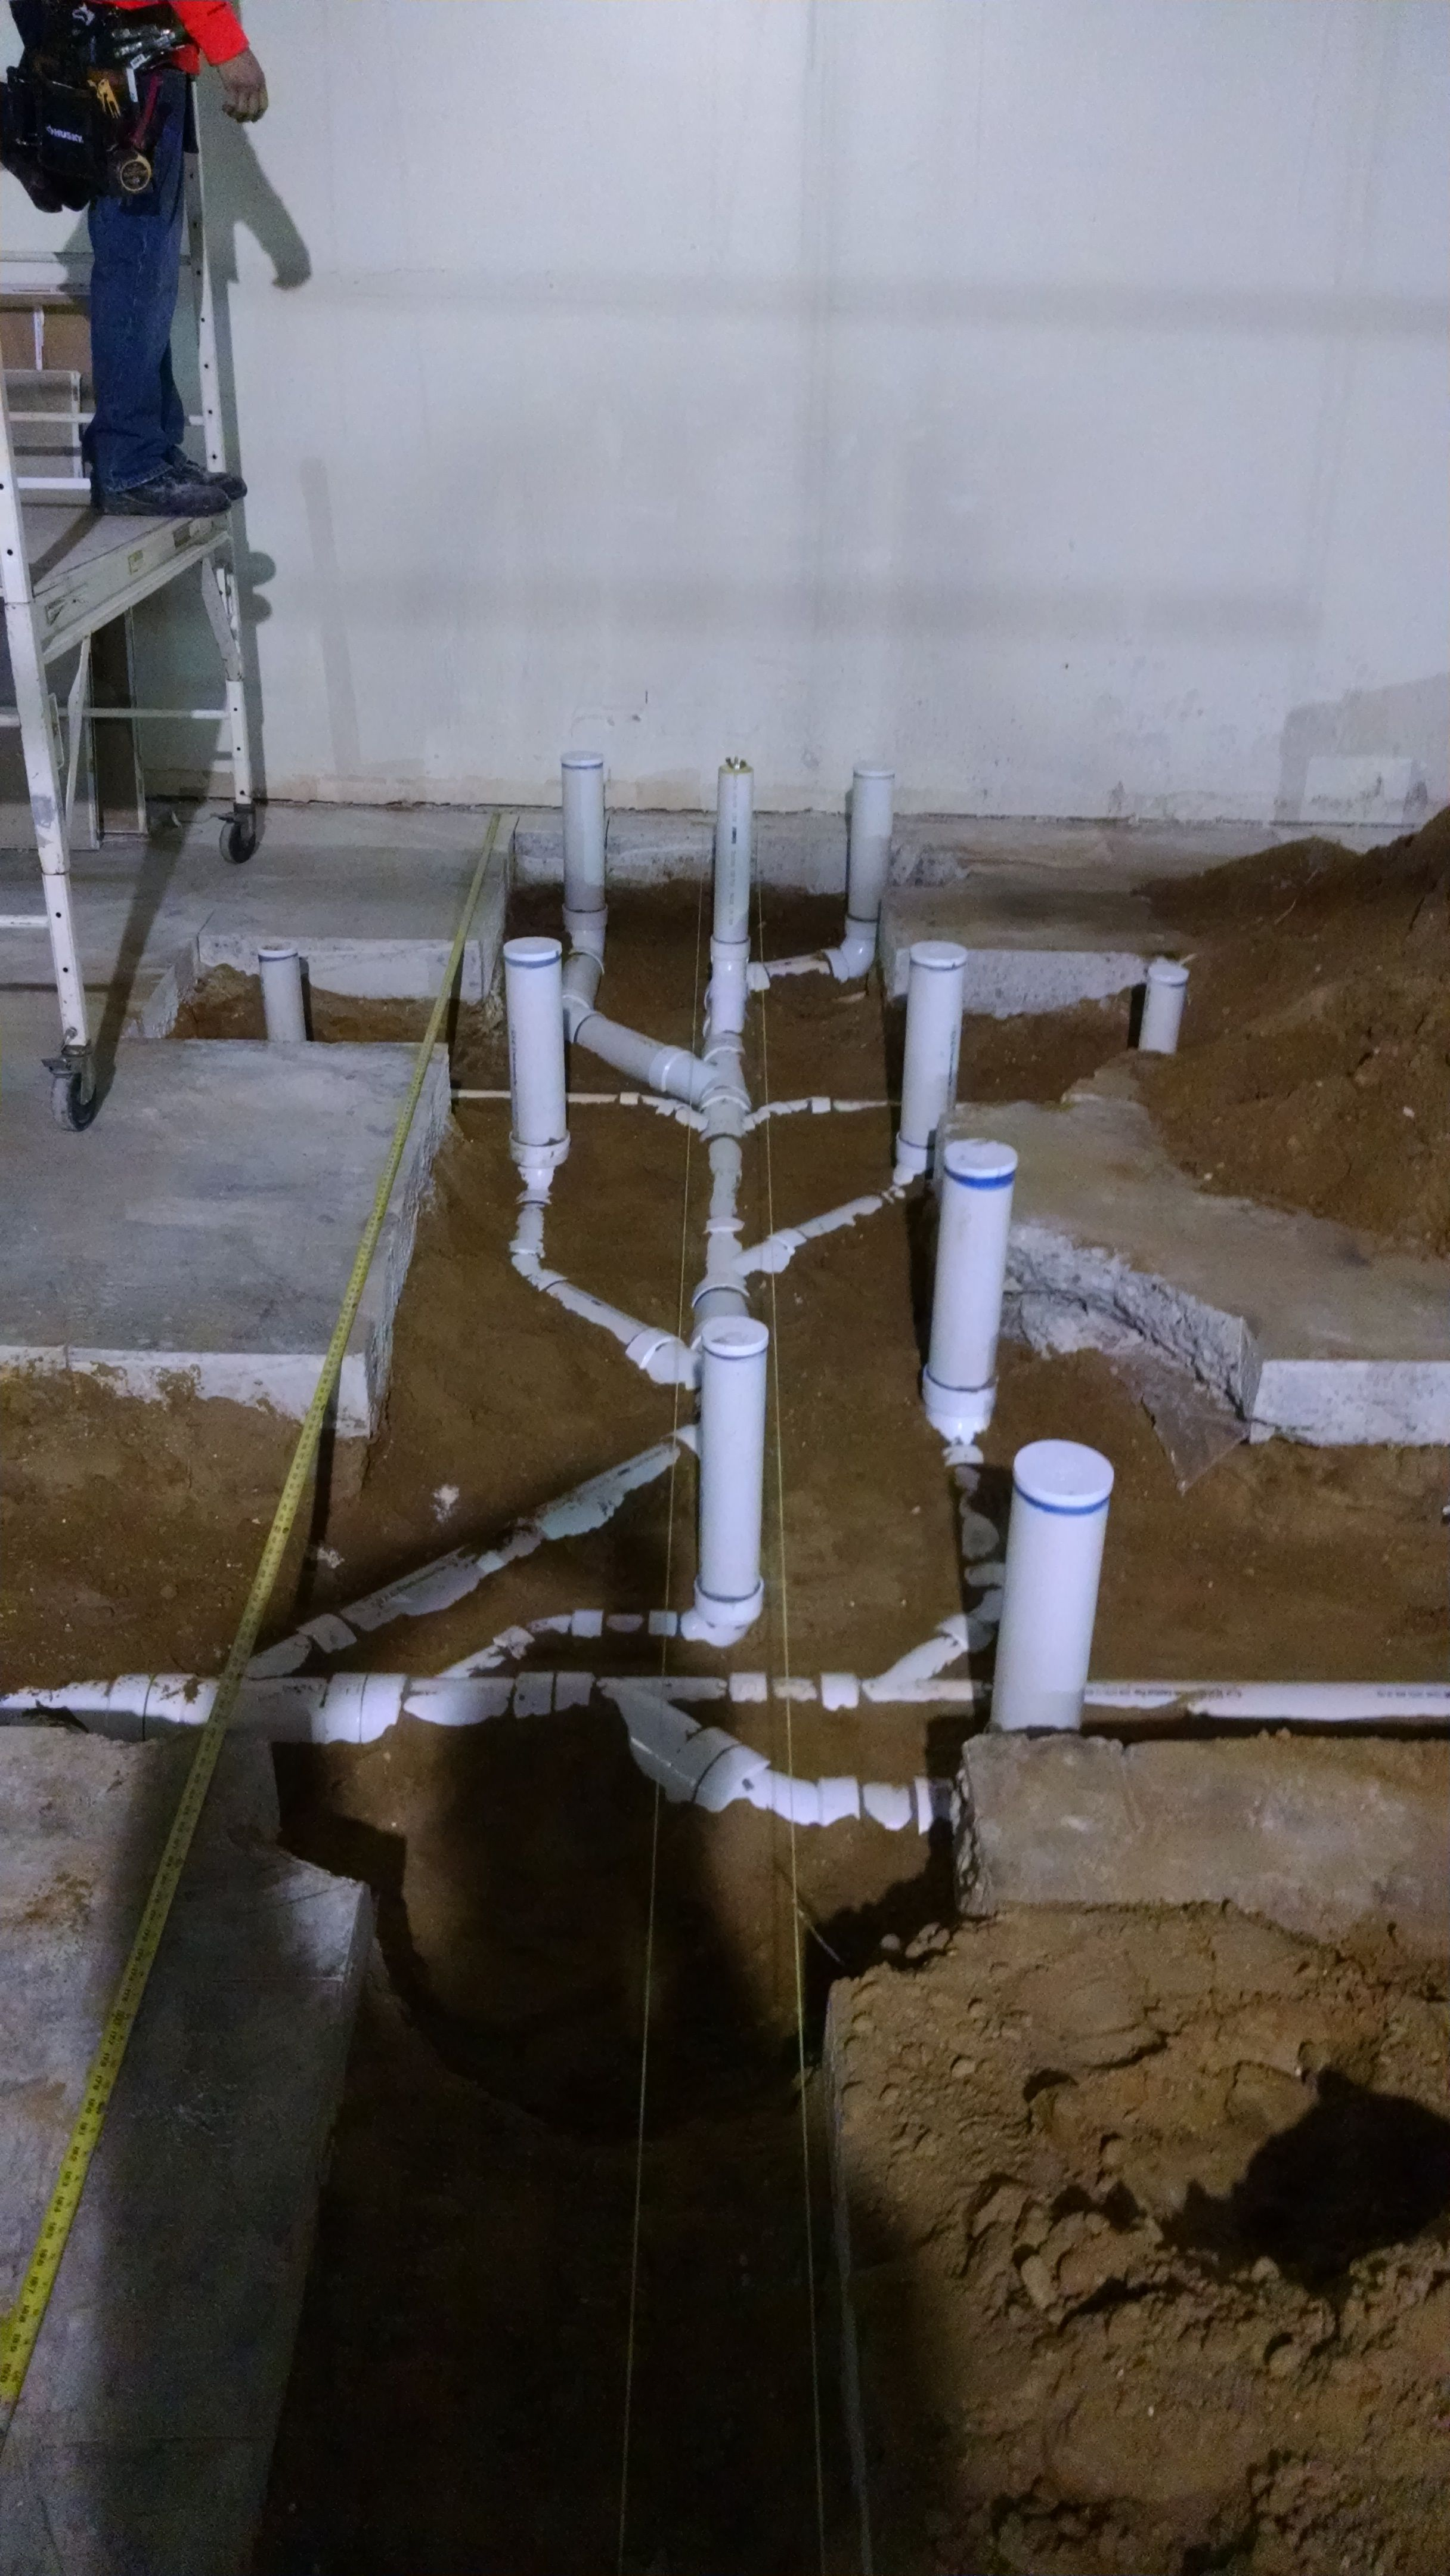 Underground toilet drains for back to back restrooms  | PIPE WRENCH